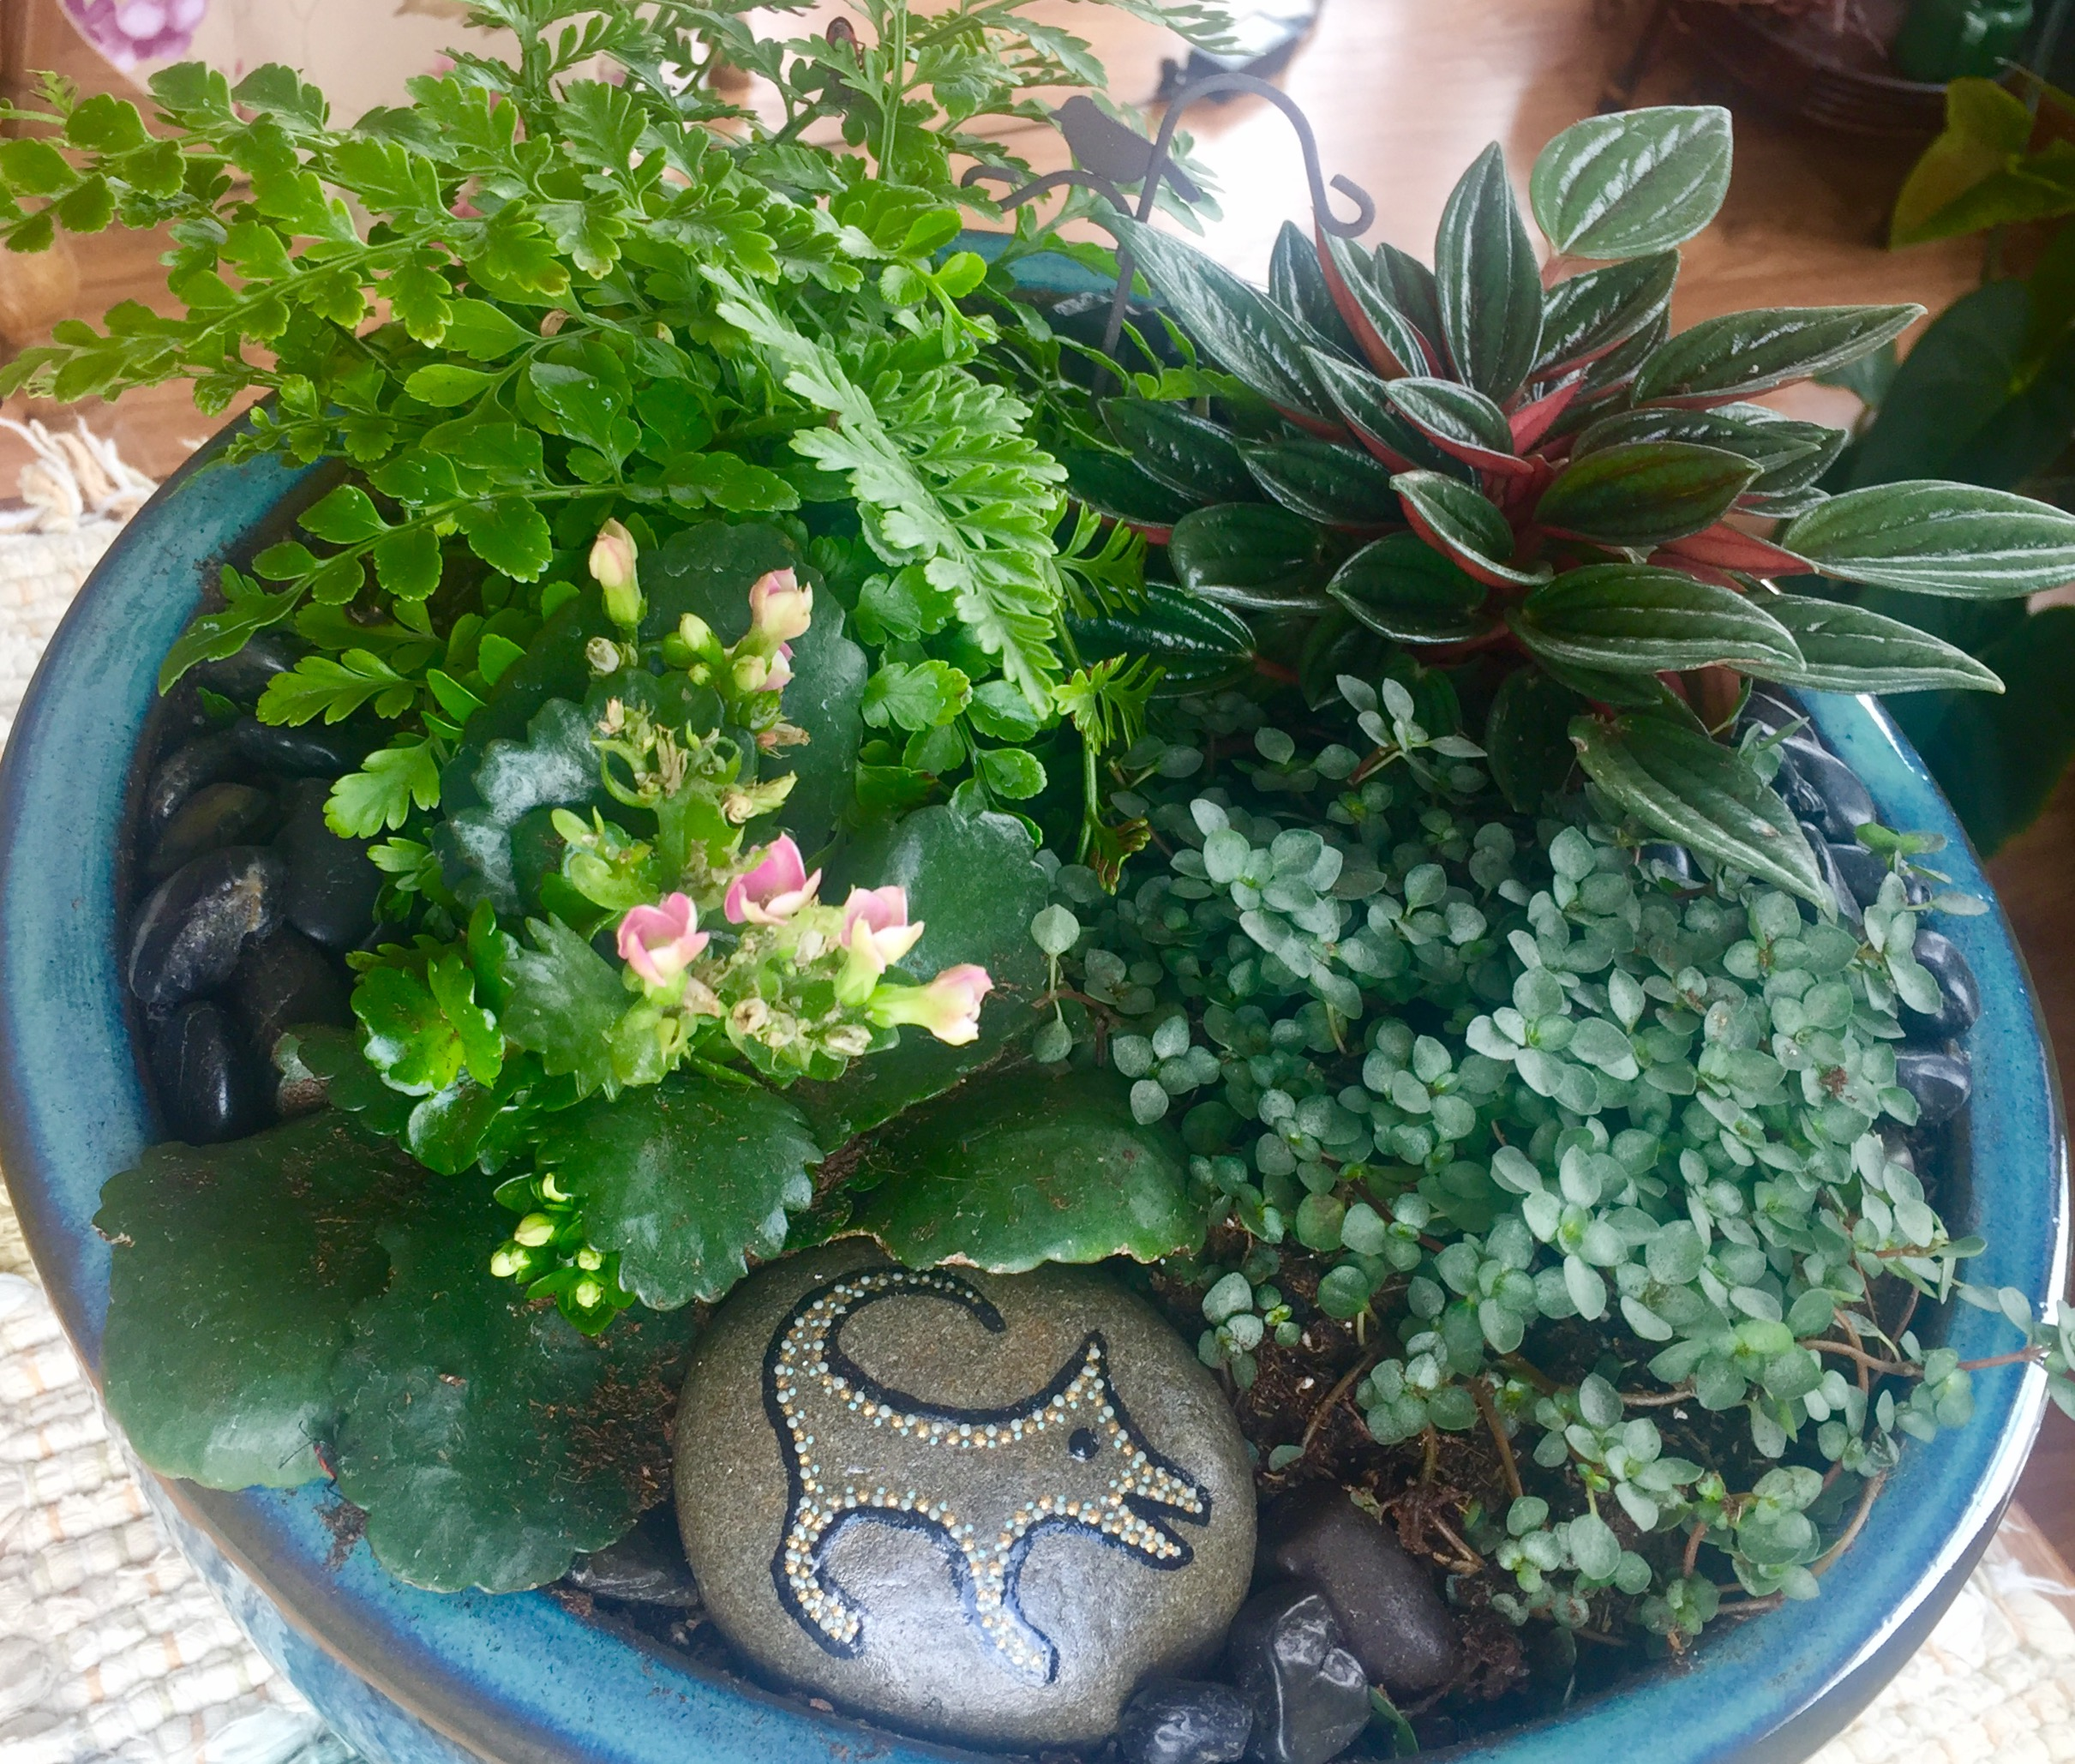 Here Are Some Cute Houseplants In Dish Gardens Accented With Stones, A Frog  And A Decorated Stone I Found At An Art Fair. (Unfortunately, I Donu0027t Have  The ...